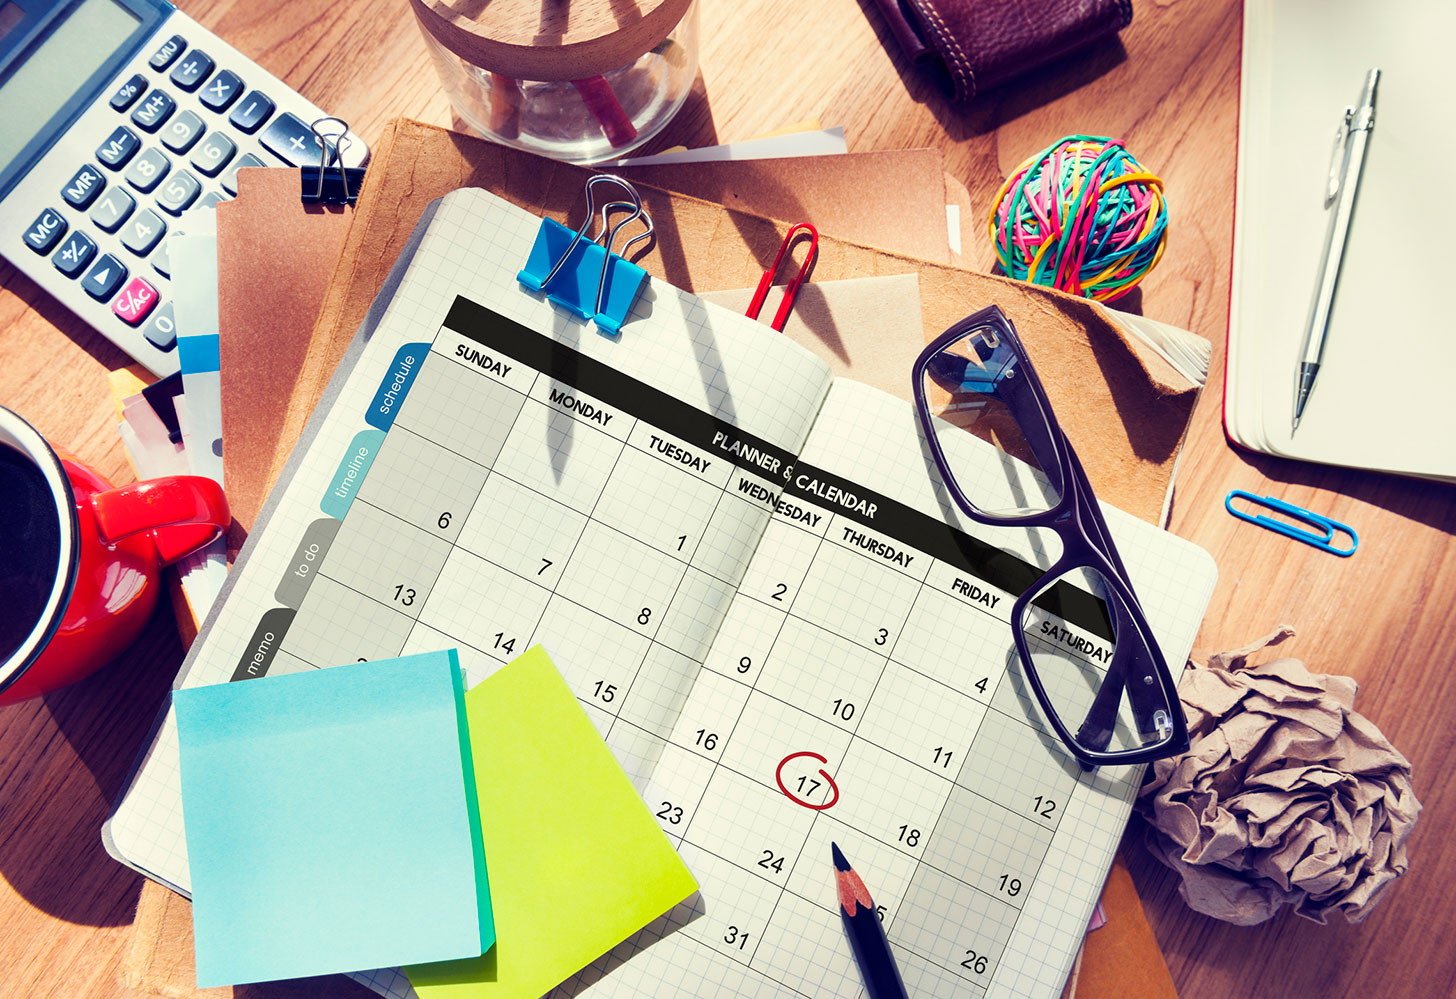 Crunch What expenses can I claim as a Sole Trader? - Stationery